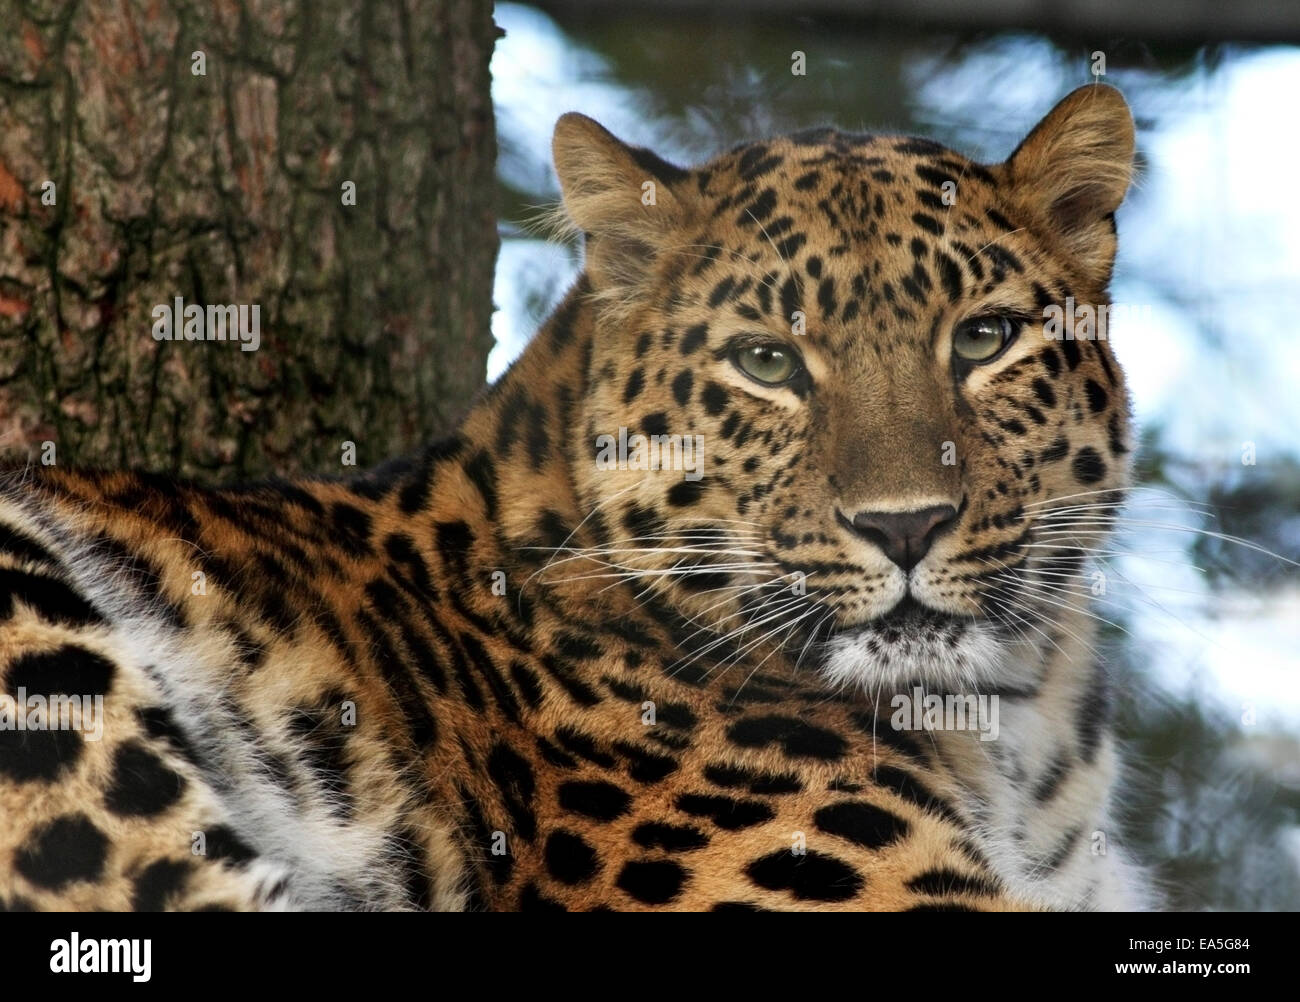 Female Amur Leopard (panthera pardus orientalis) Kaia at Marwell Wildlife, Hampshire, England - Stock Image